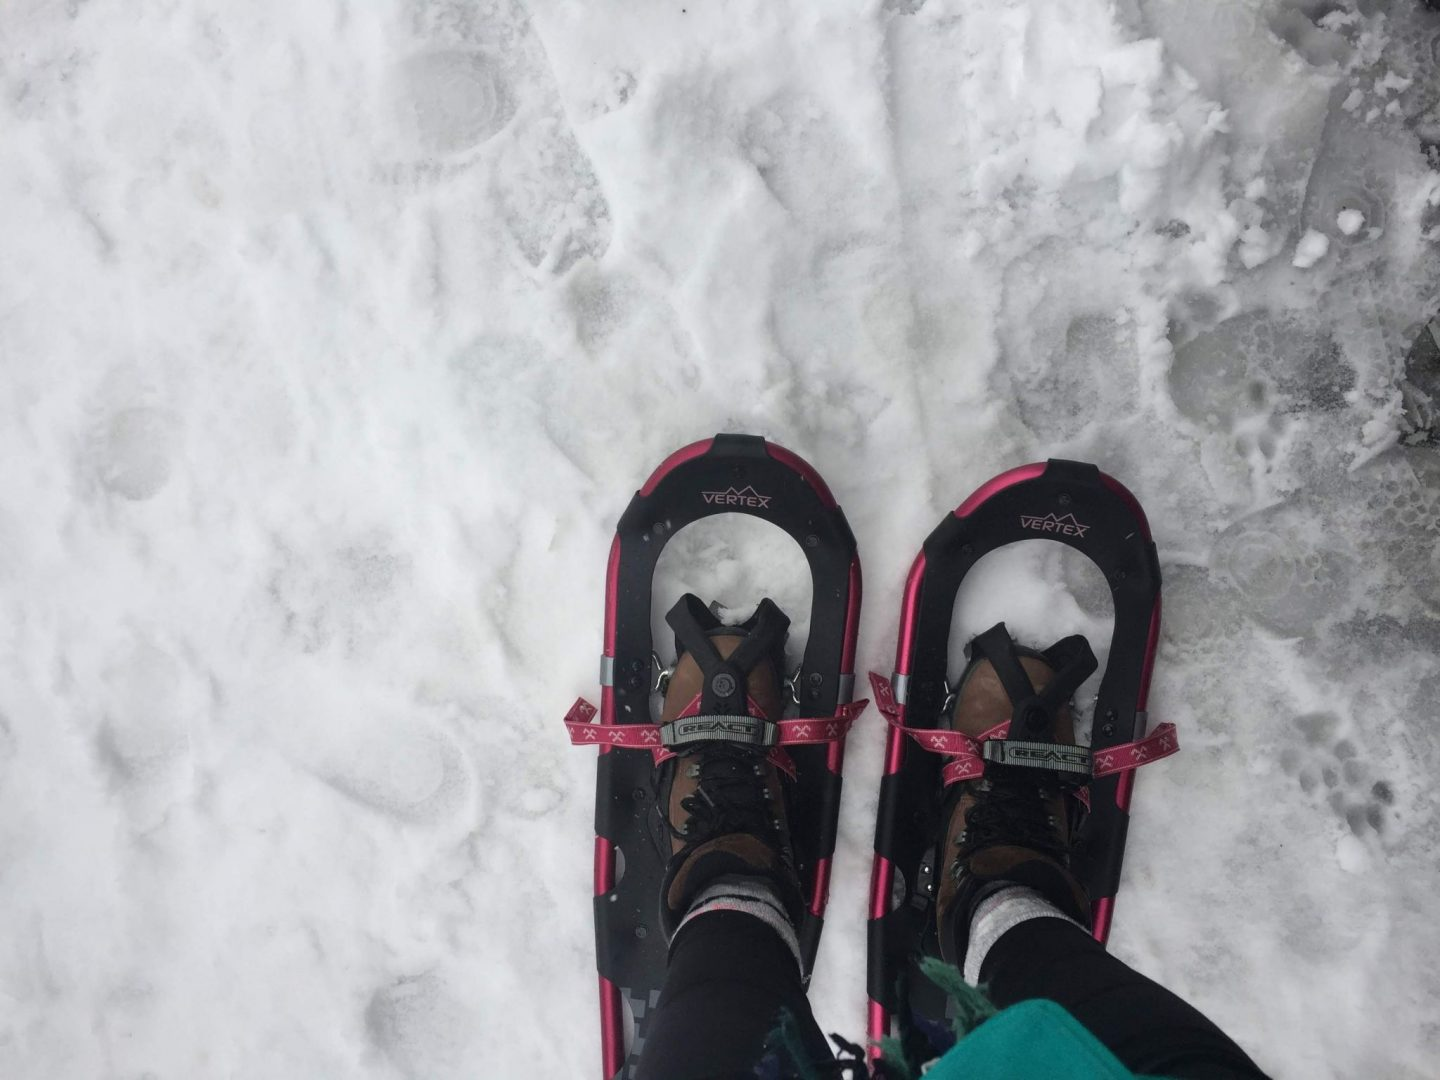 Donning snowshoes on Mount Seymour, Vancouver